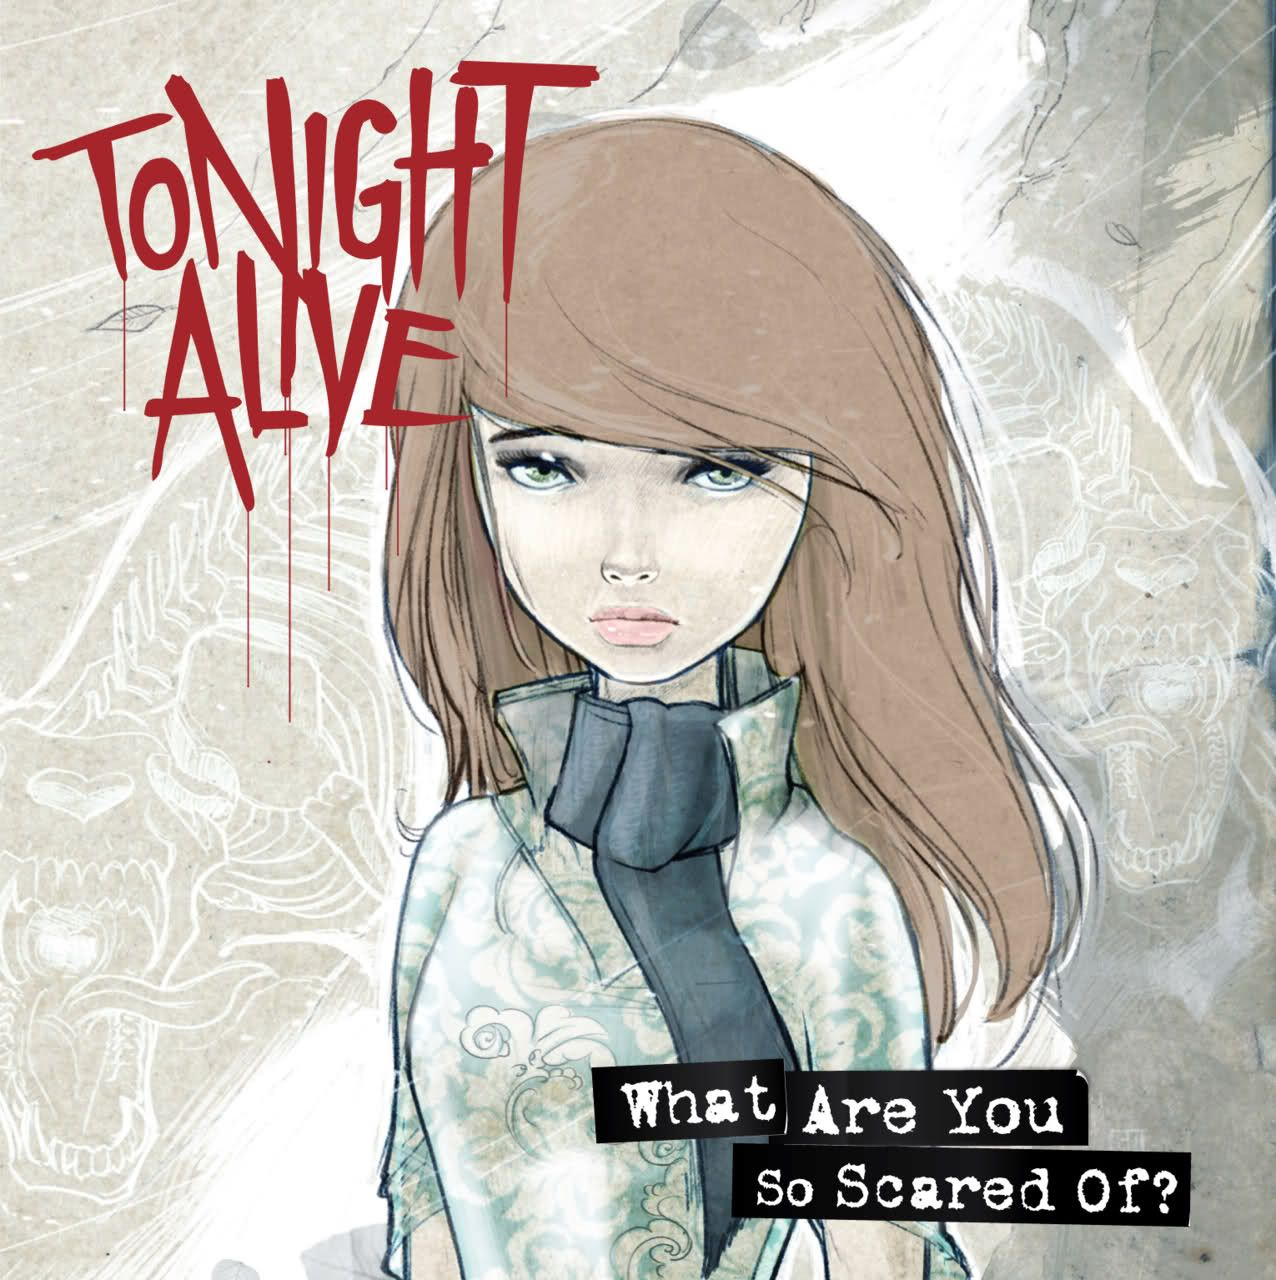 Tonight Alive - What Are You So Scared Of? album cover